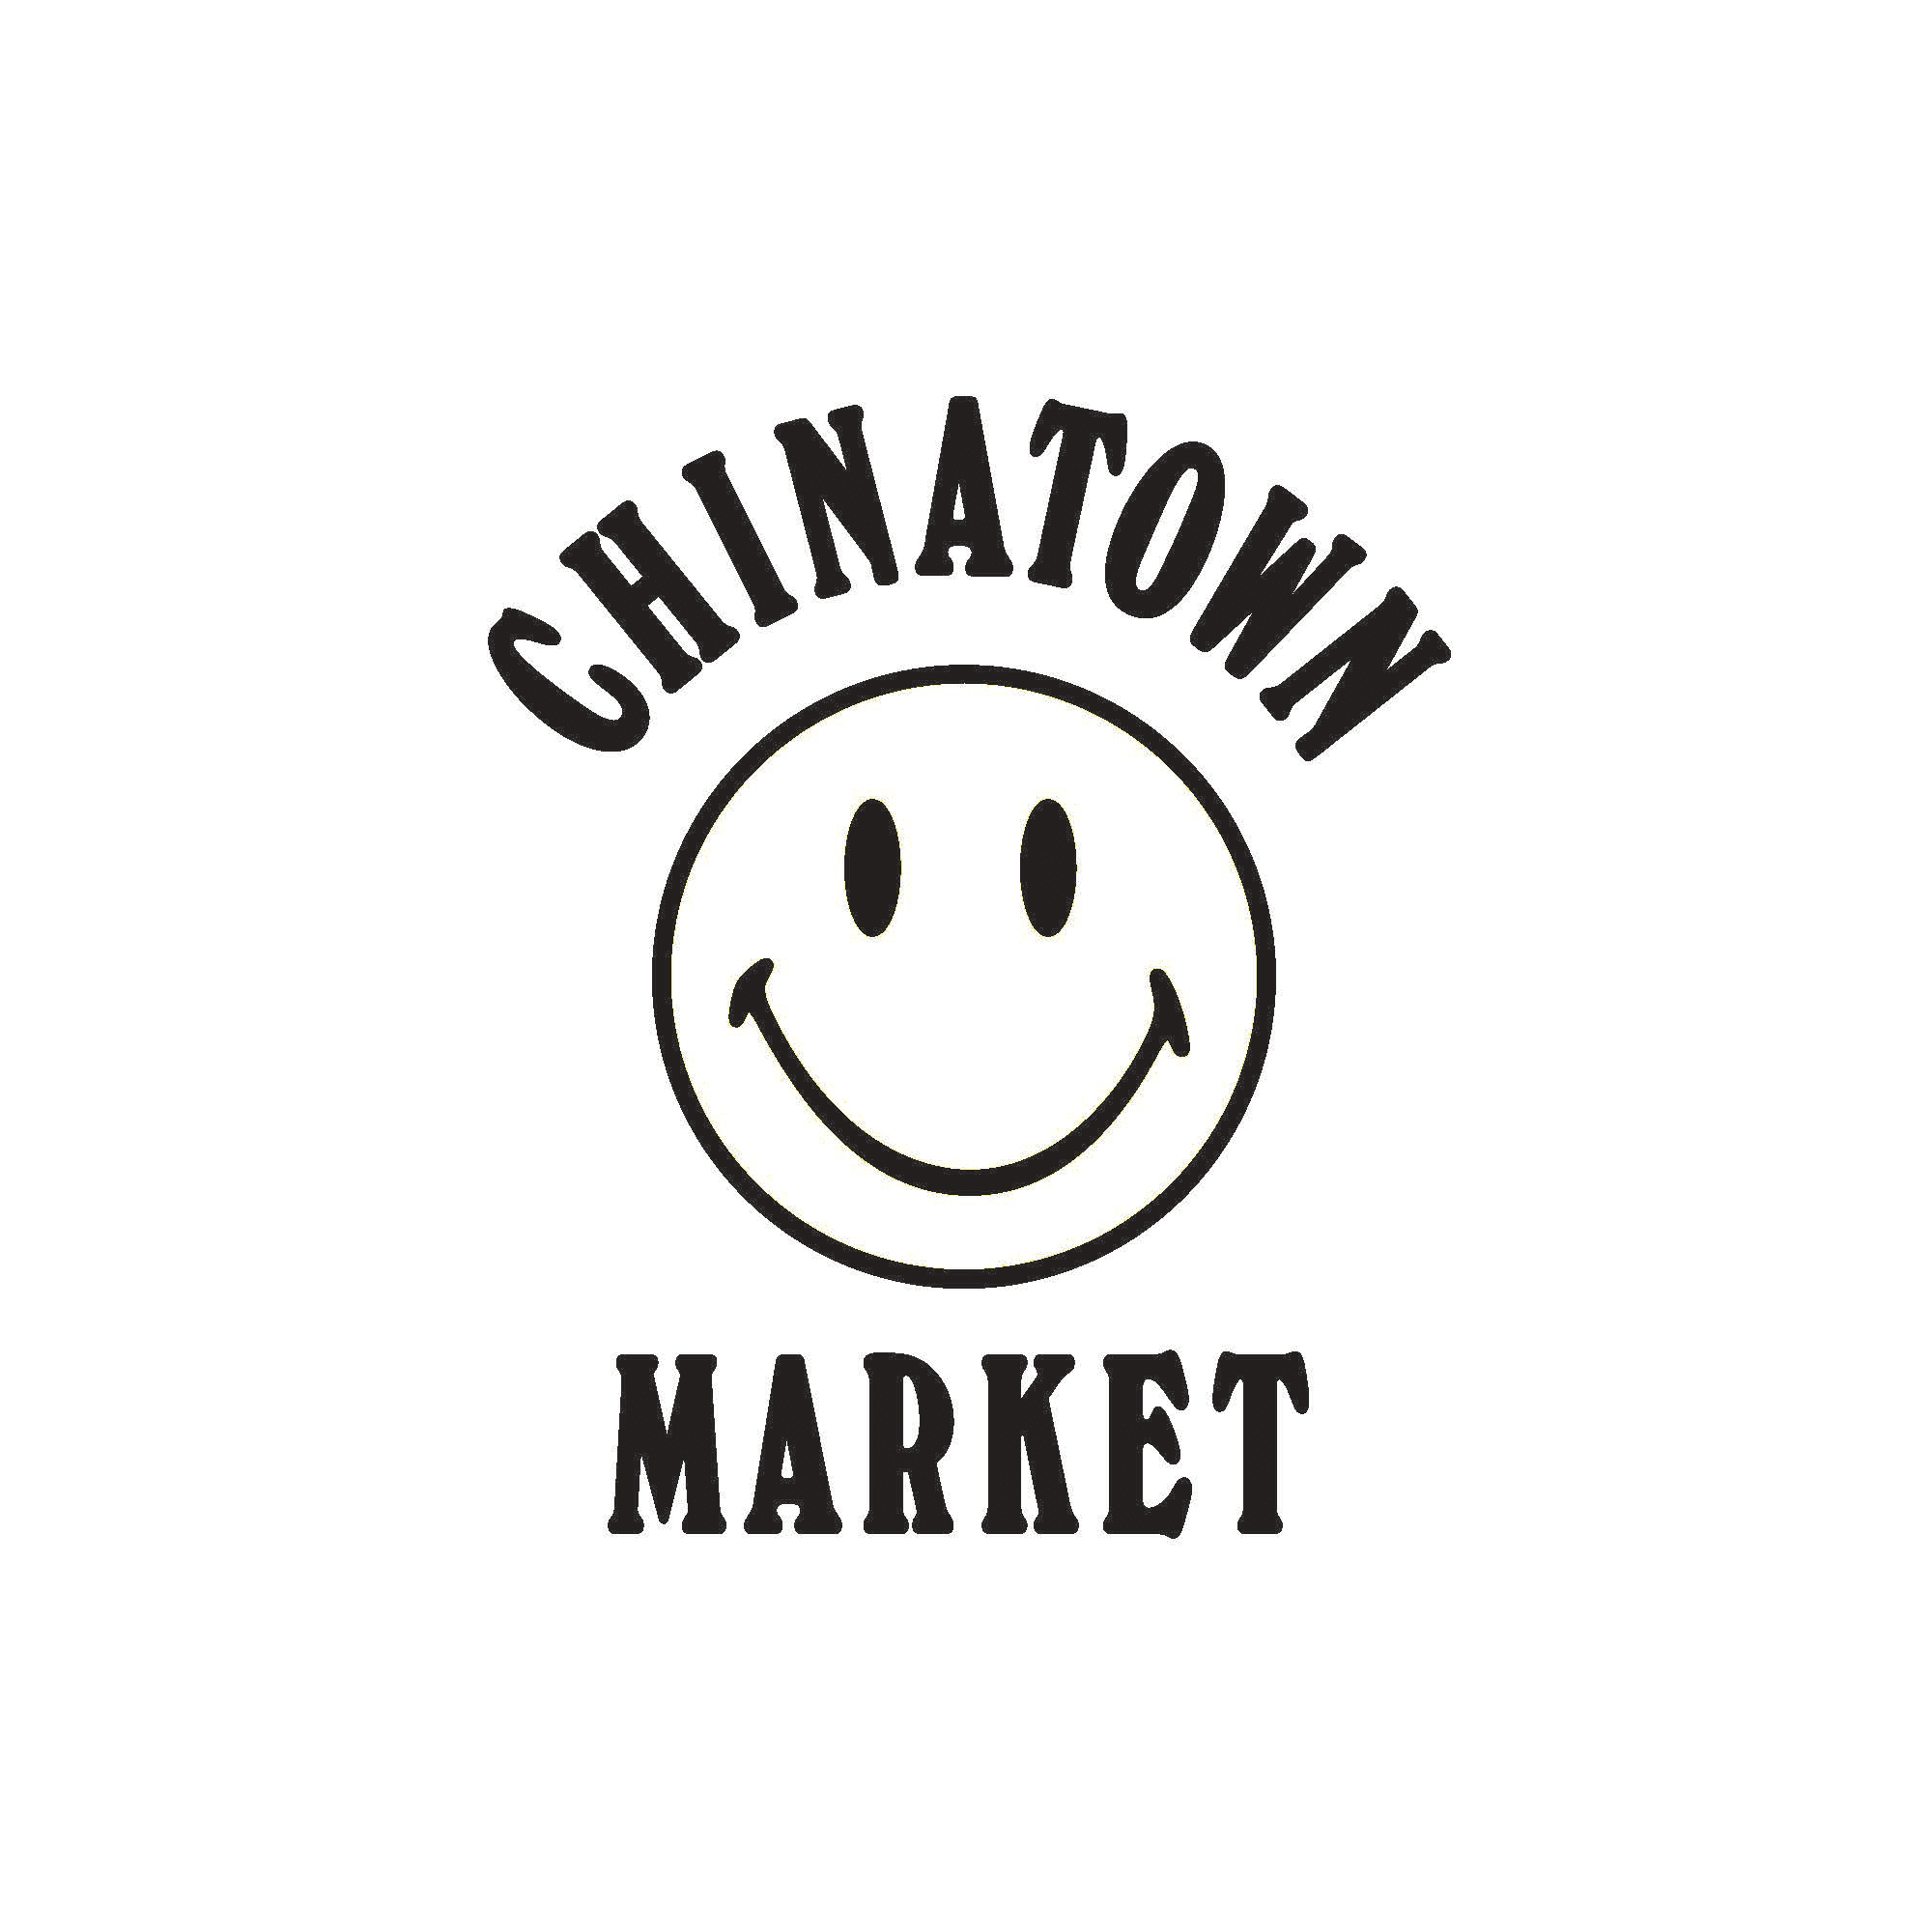 Chinatown Market Marketplace Complexcon